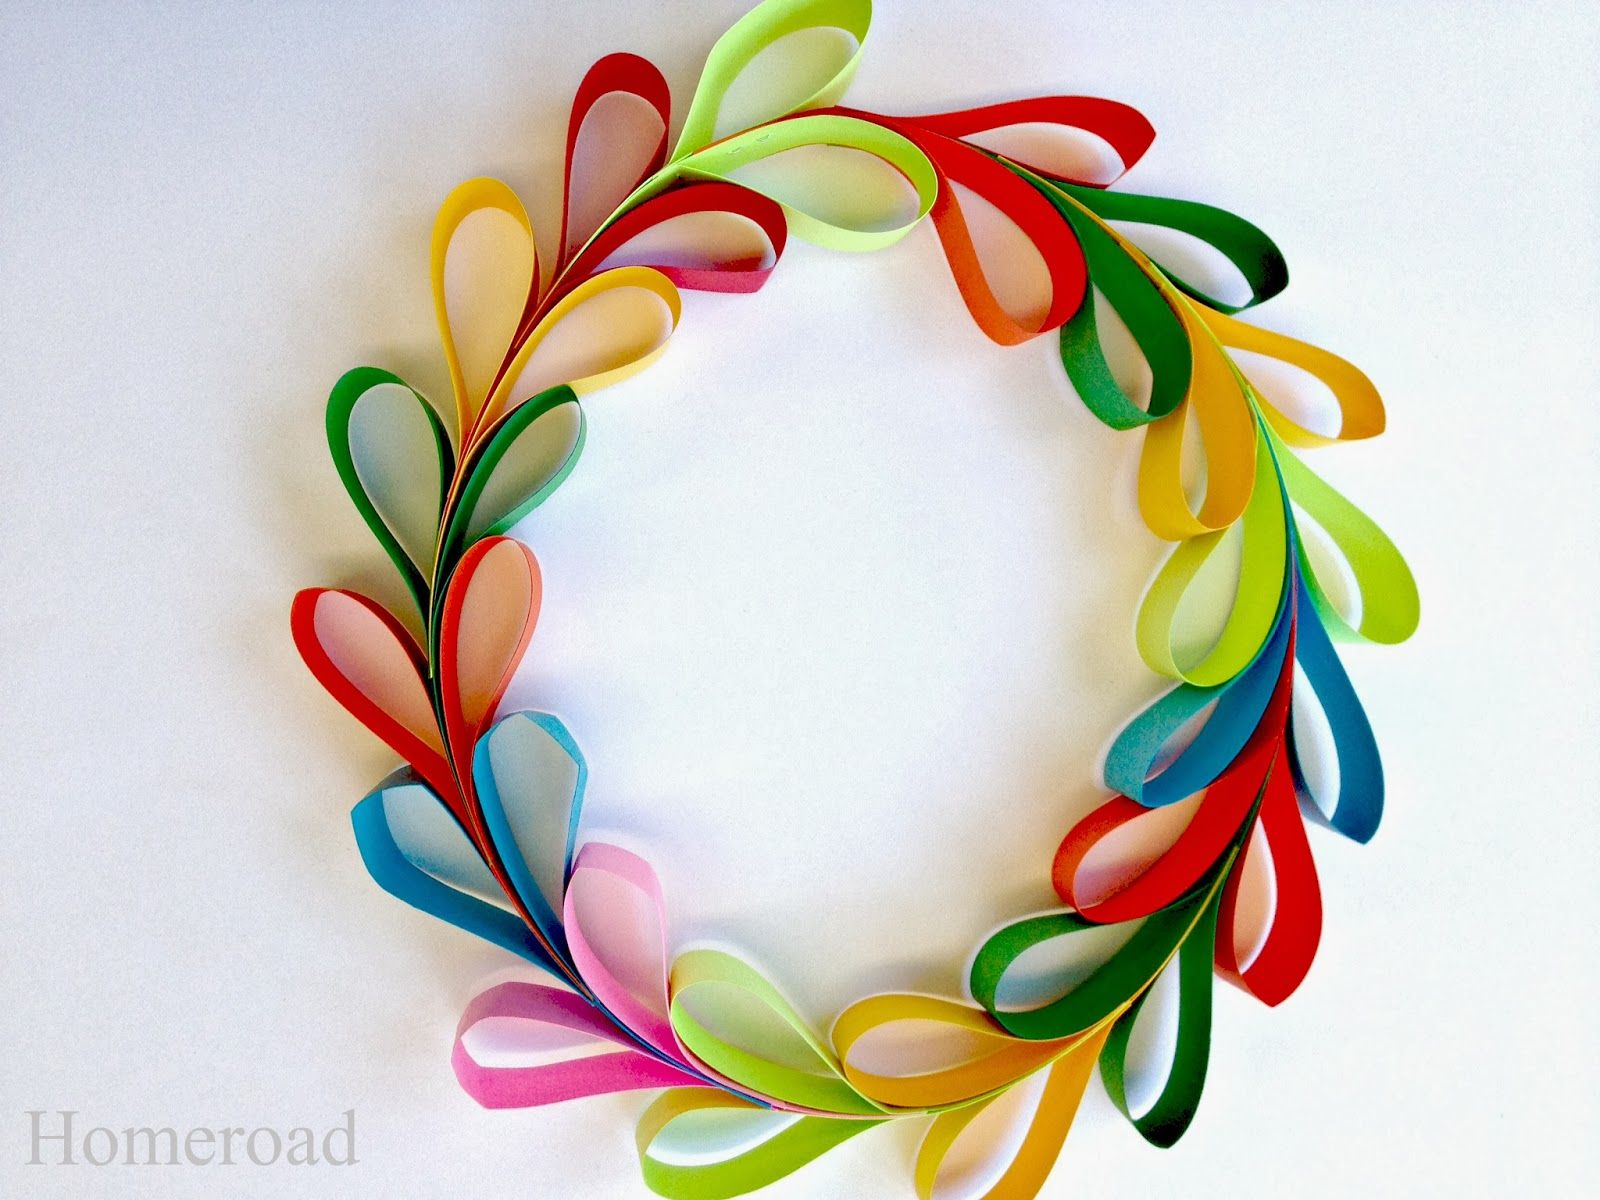 Paper Heart Wreath for Valentine's Day